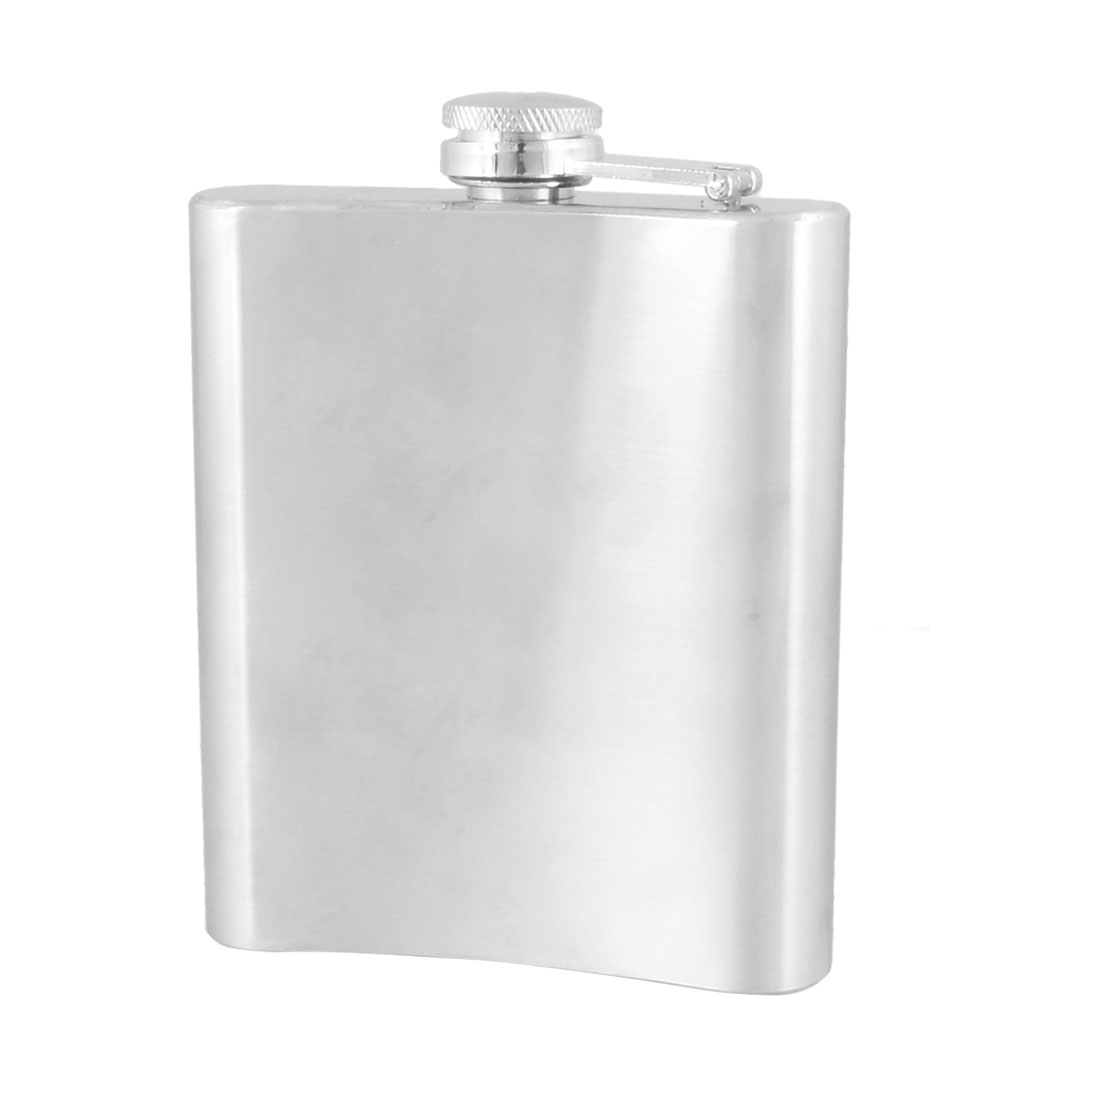 7oz 199ml Stainless Steel Whisky Wine Liquor Hip Flask